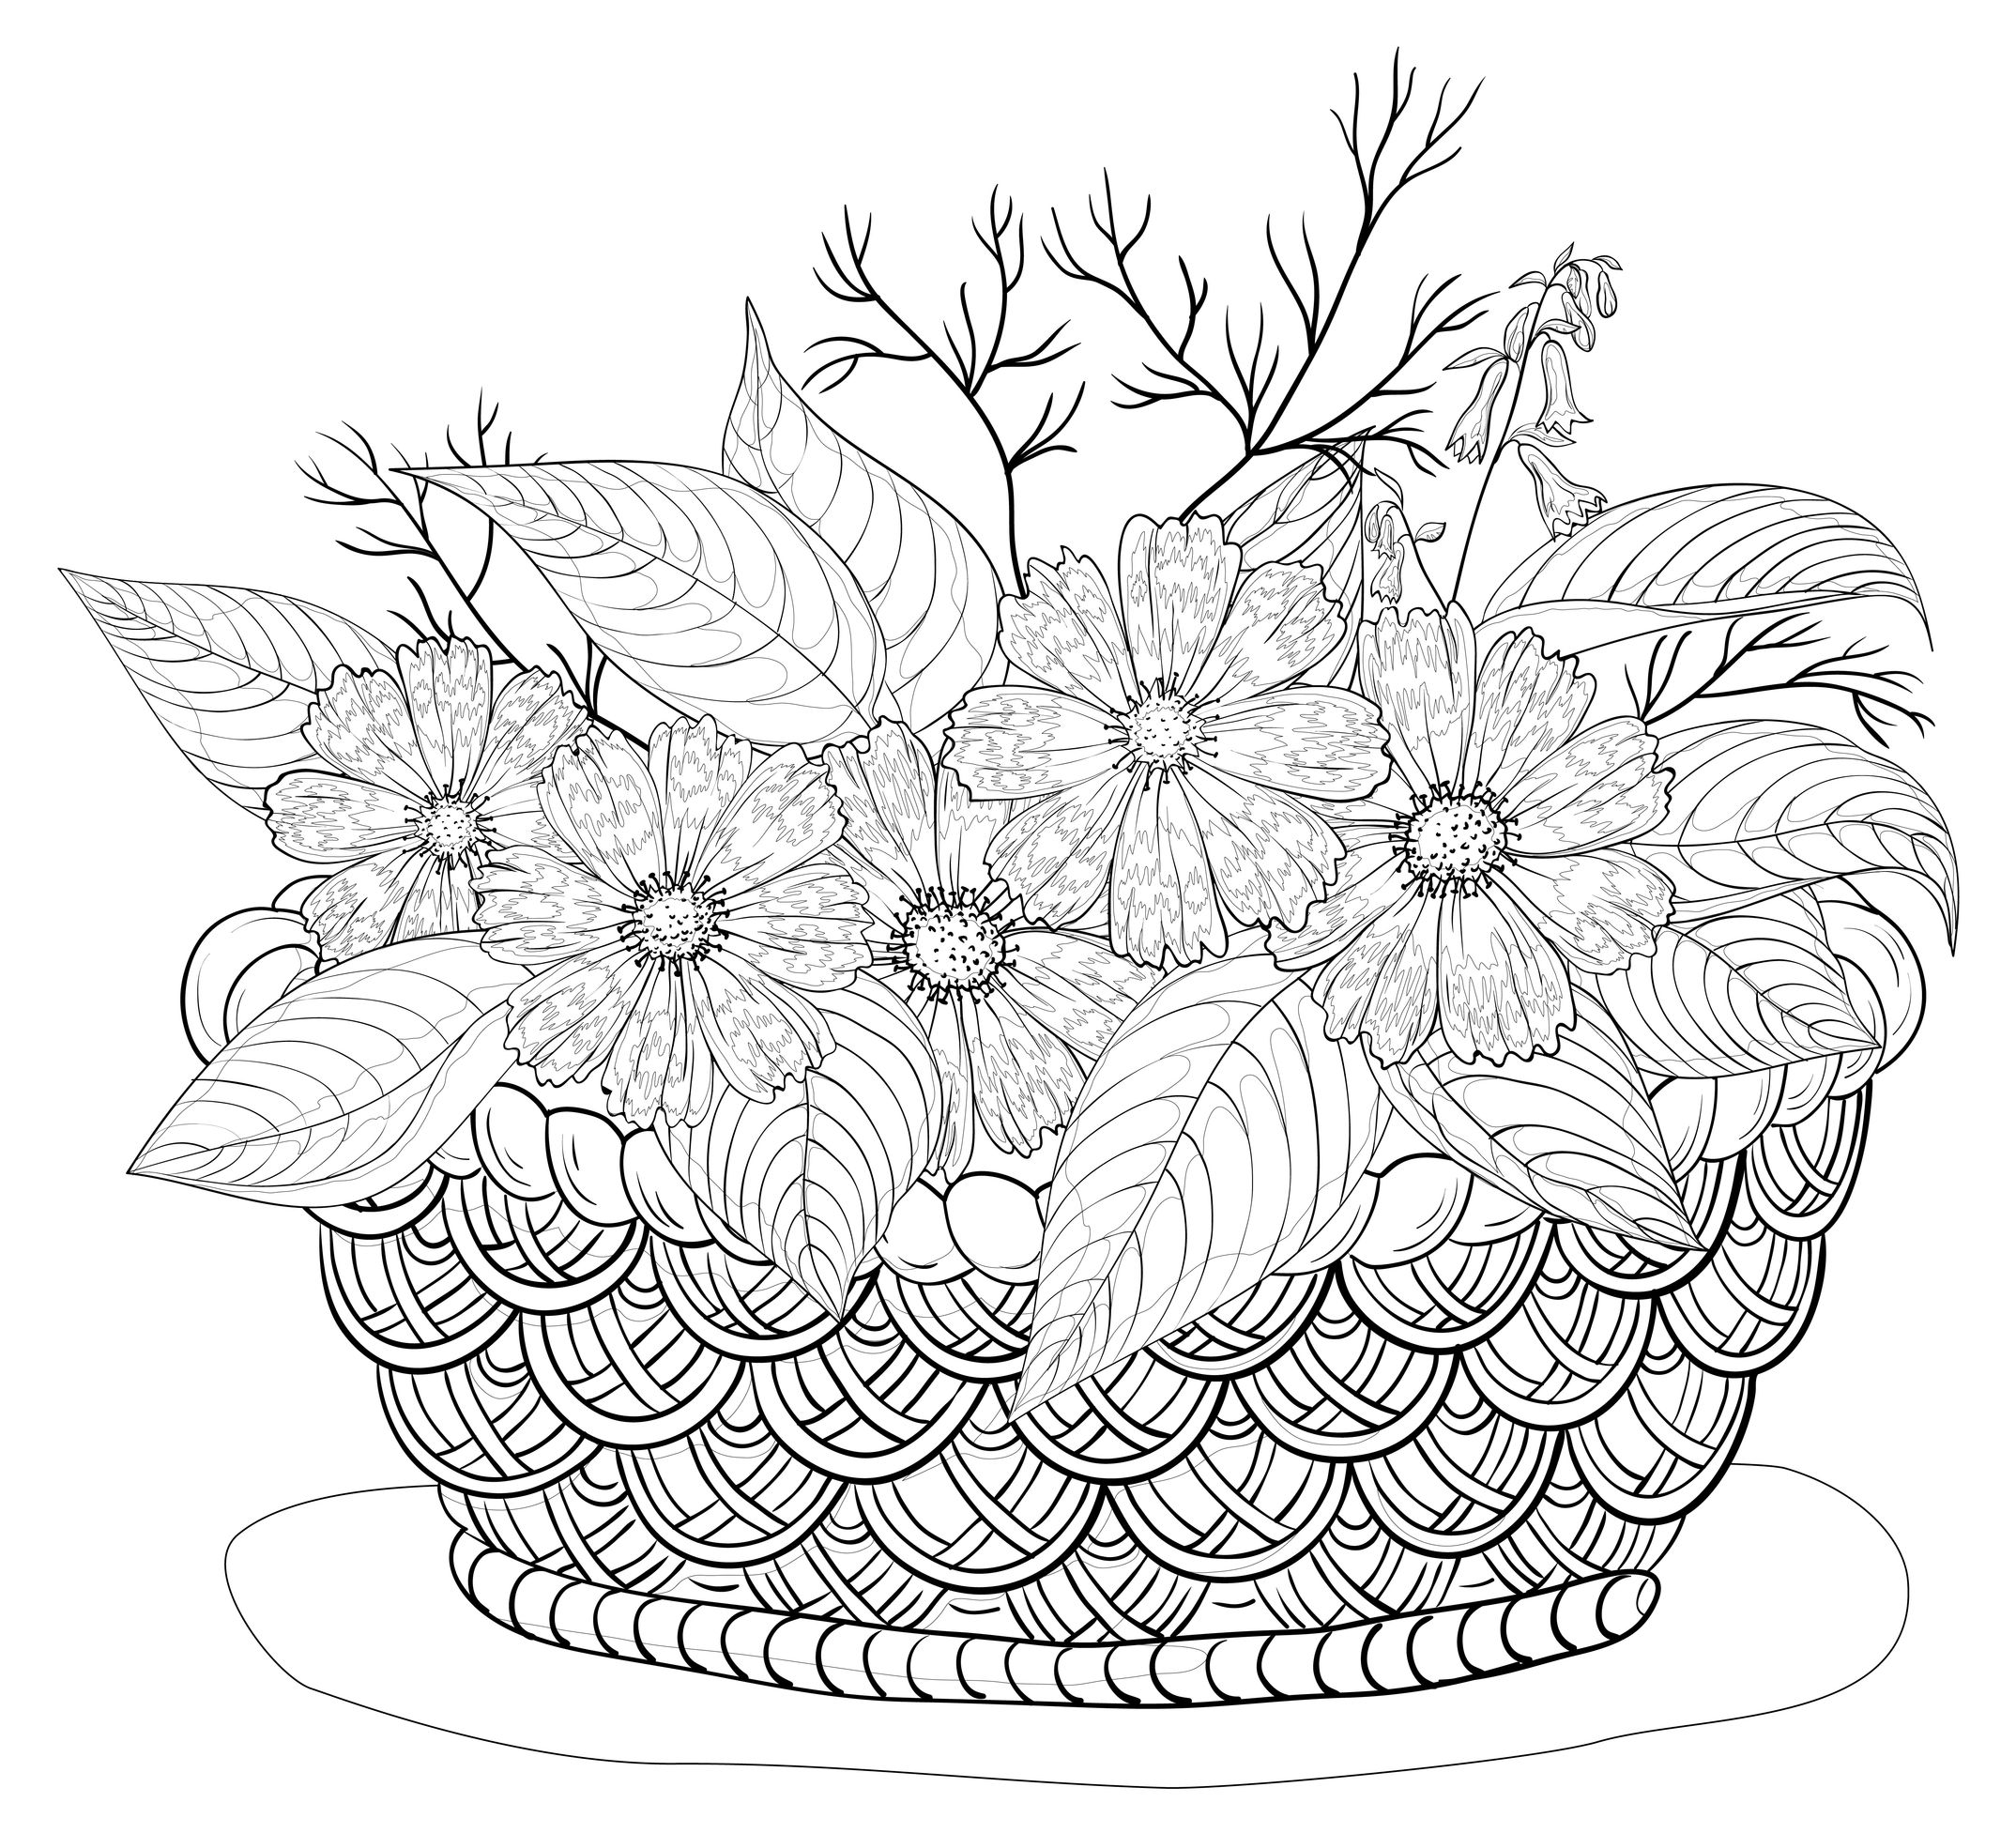 90 dessins de coloriage nature adulte imprimer - Coloriage adulte difficile ...